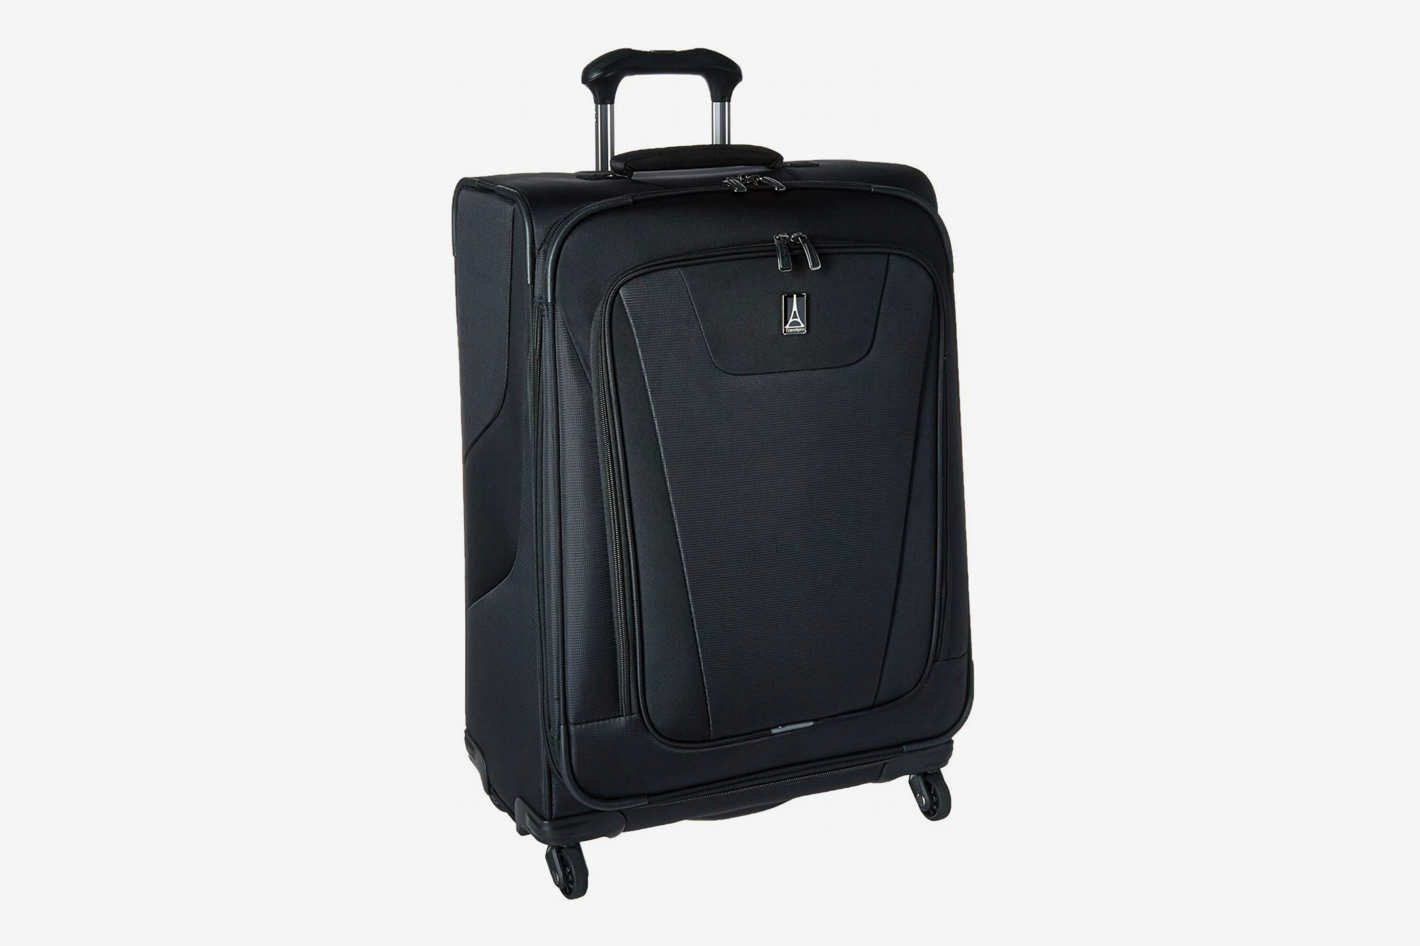 0edbce212c29 21 Best Rolling Suitcases and Luggage Under $250: 2019